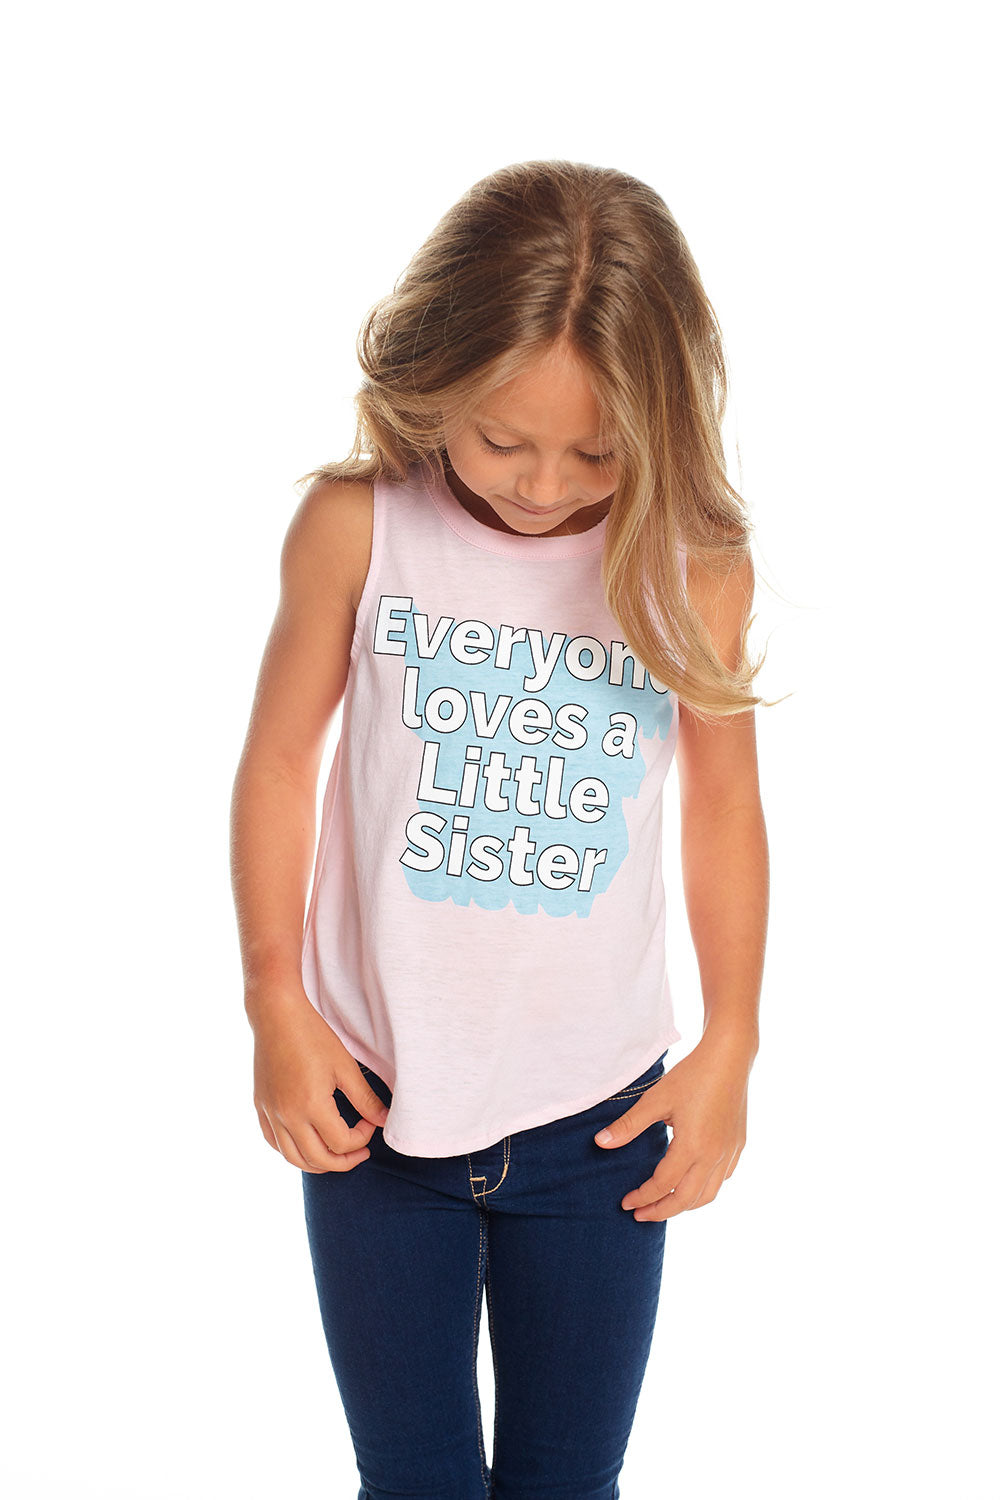 Love A Little Sister, GIRLS, chaserbrand.com,chaser clothing,chaser apparel,chaser los angeles